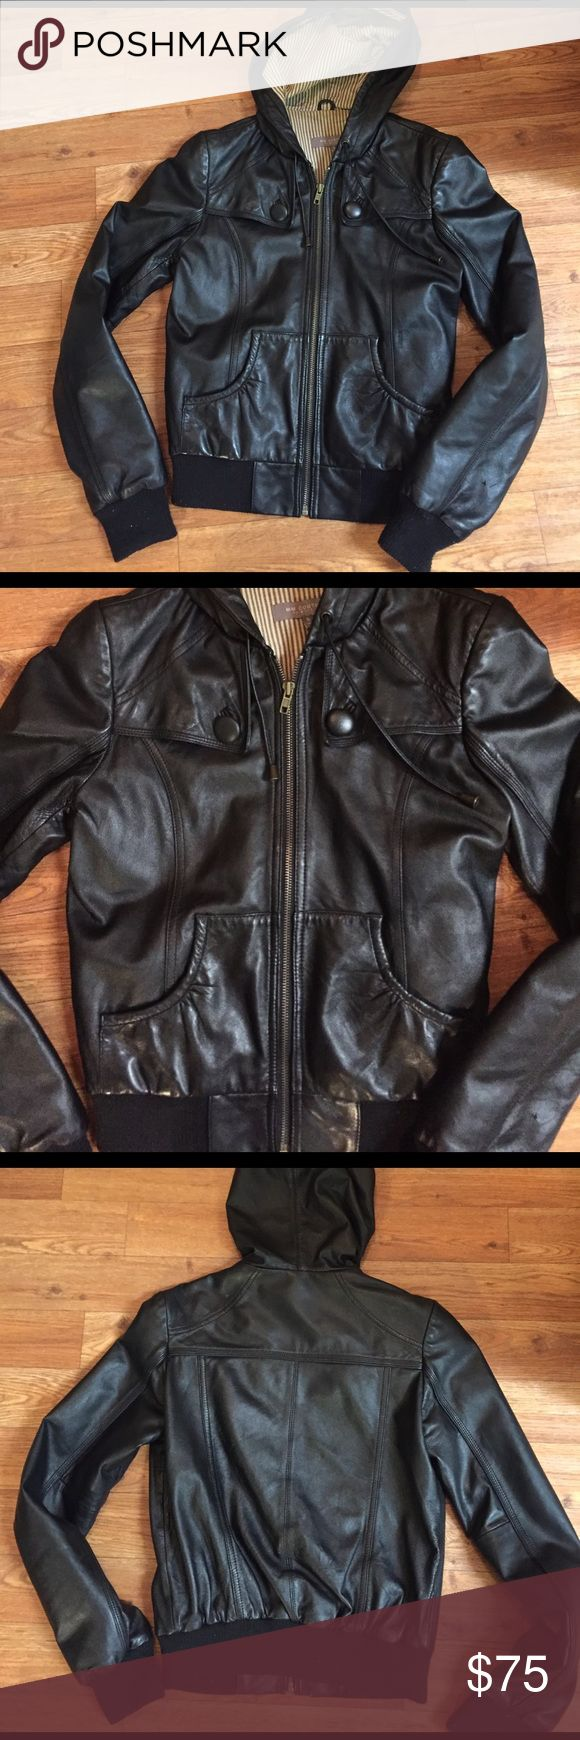 Small Miss Me Couture Leather Jacket with hood I'm great condition! The lining is a brown gray stripe. This is a realllly soft leather with fabric cuffs, a zip front, draw string hood, and lots of beautiful detail! There is one small fade spot, but other than that, it looks great! Miss Me Jackets & Coats